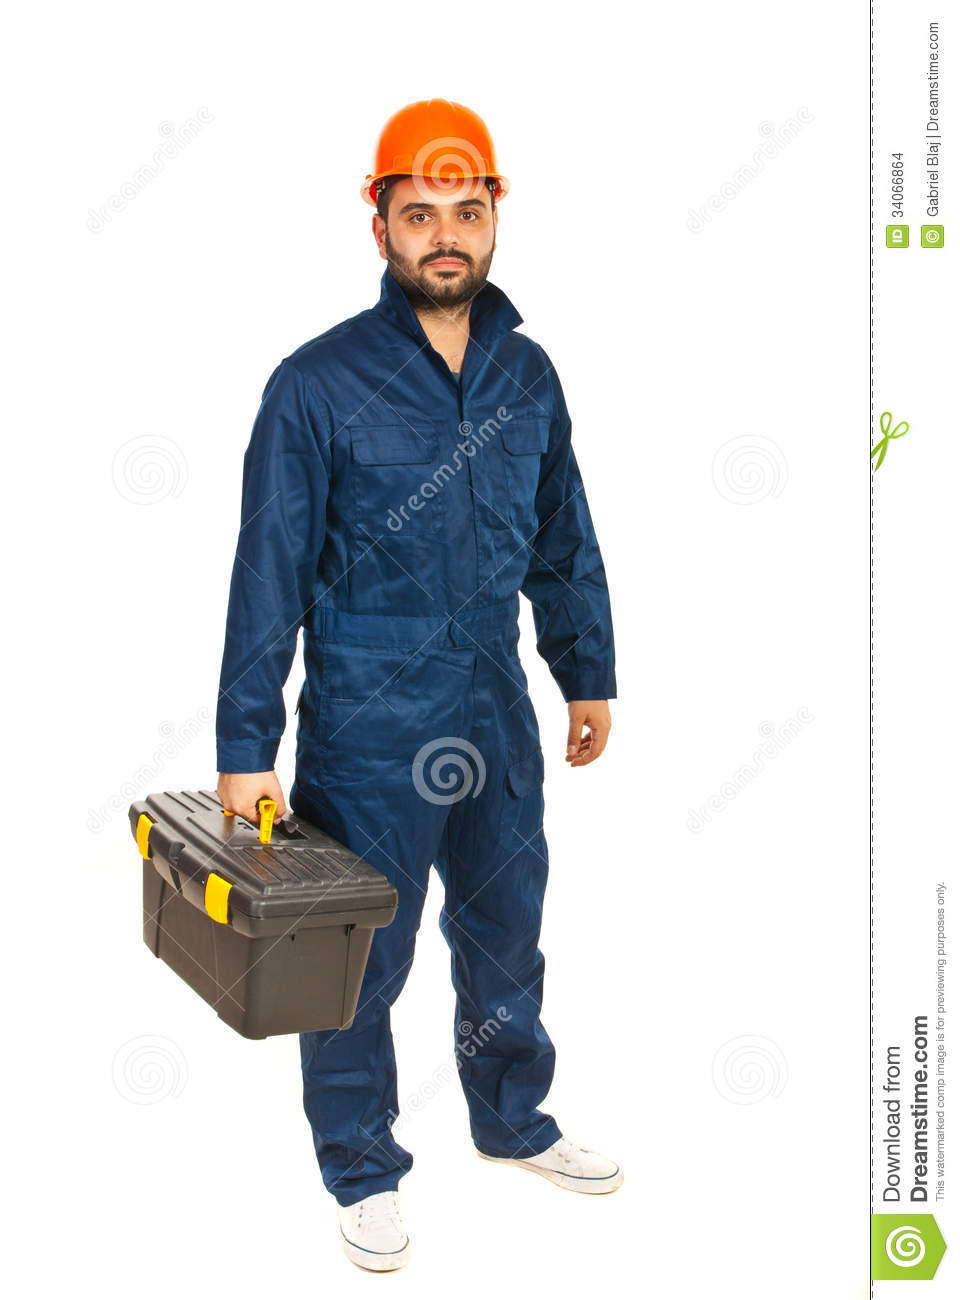 Electrician worker man holding tools box isolated on white background.